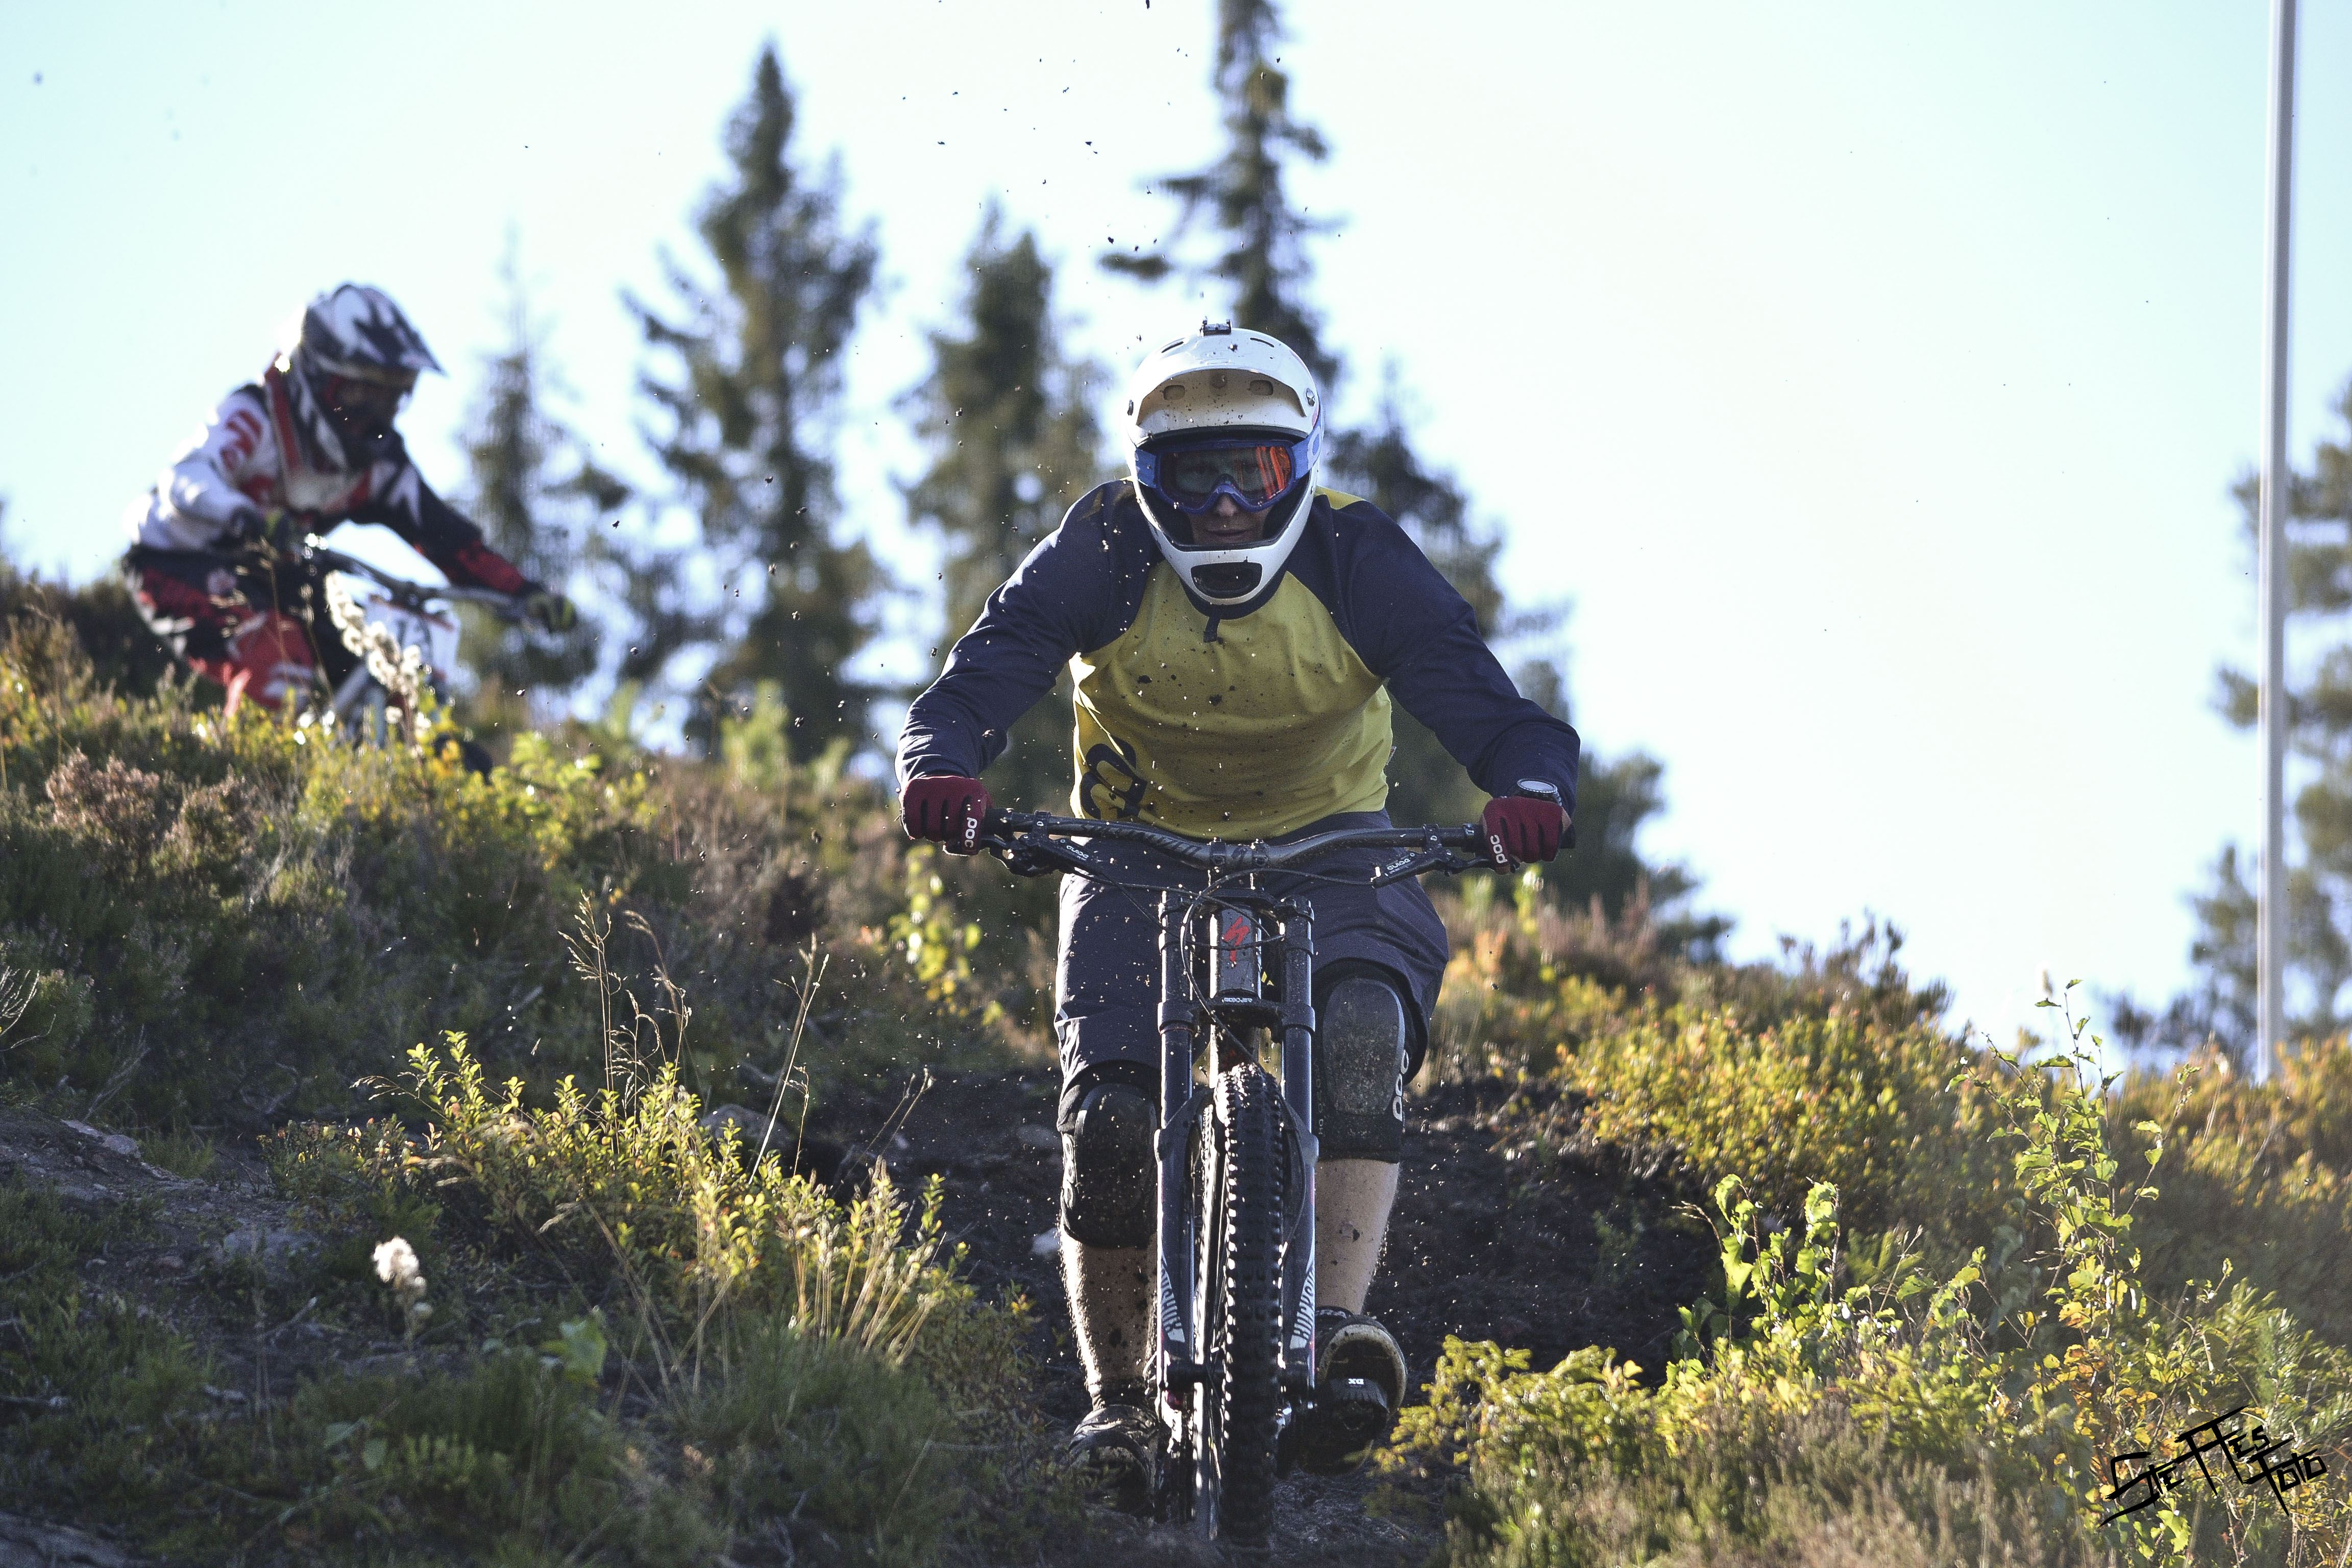 Gesunda giant Enduro series Sweden